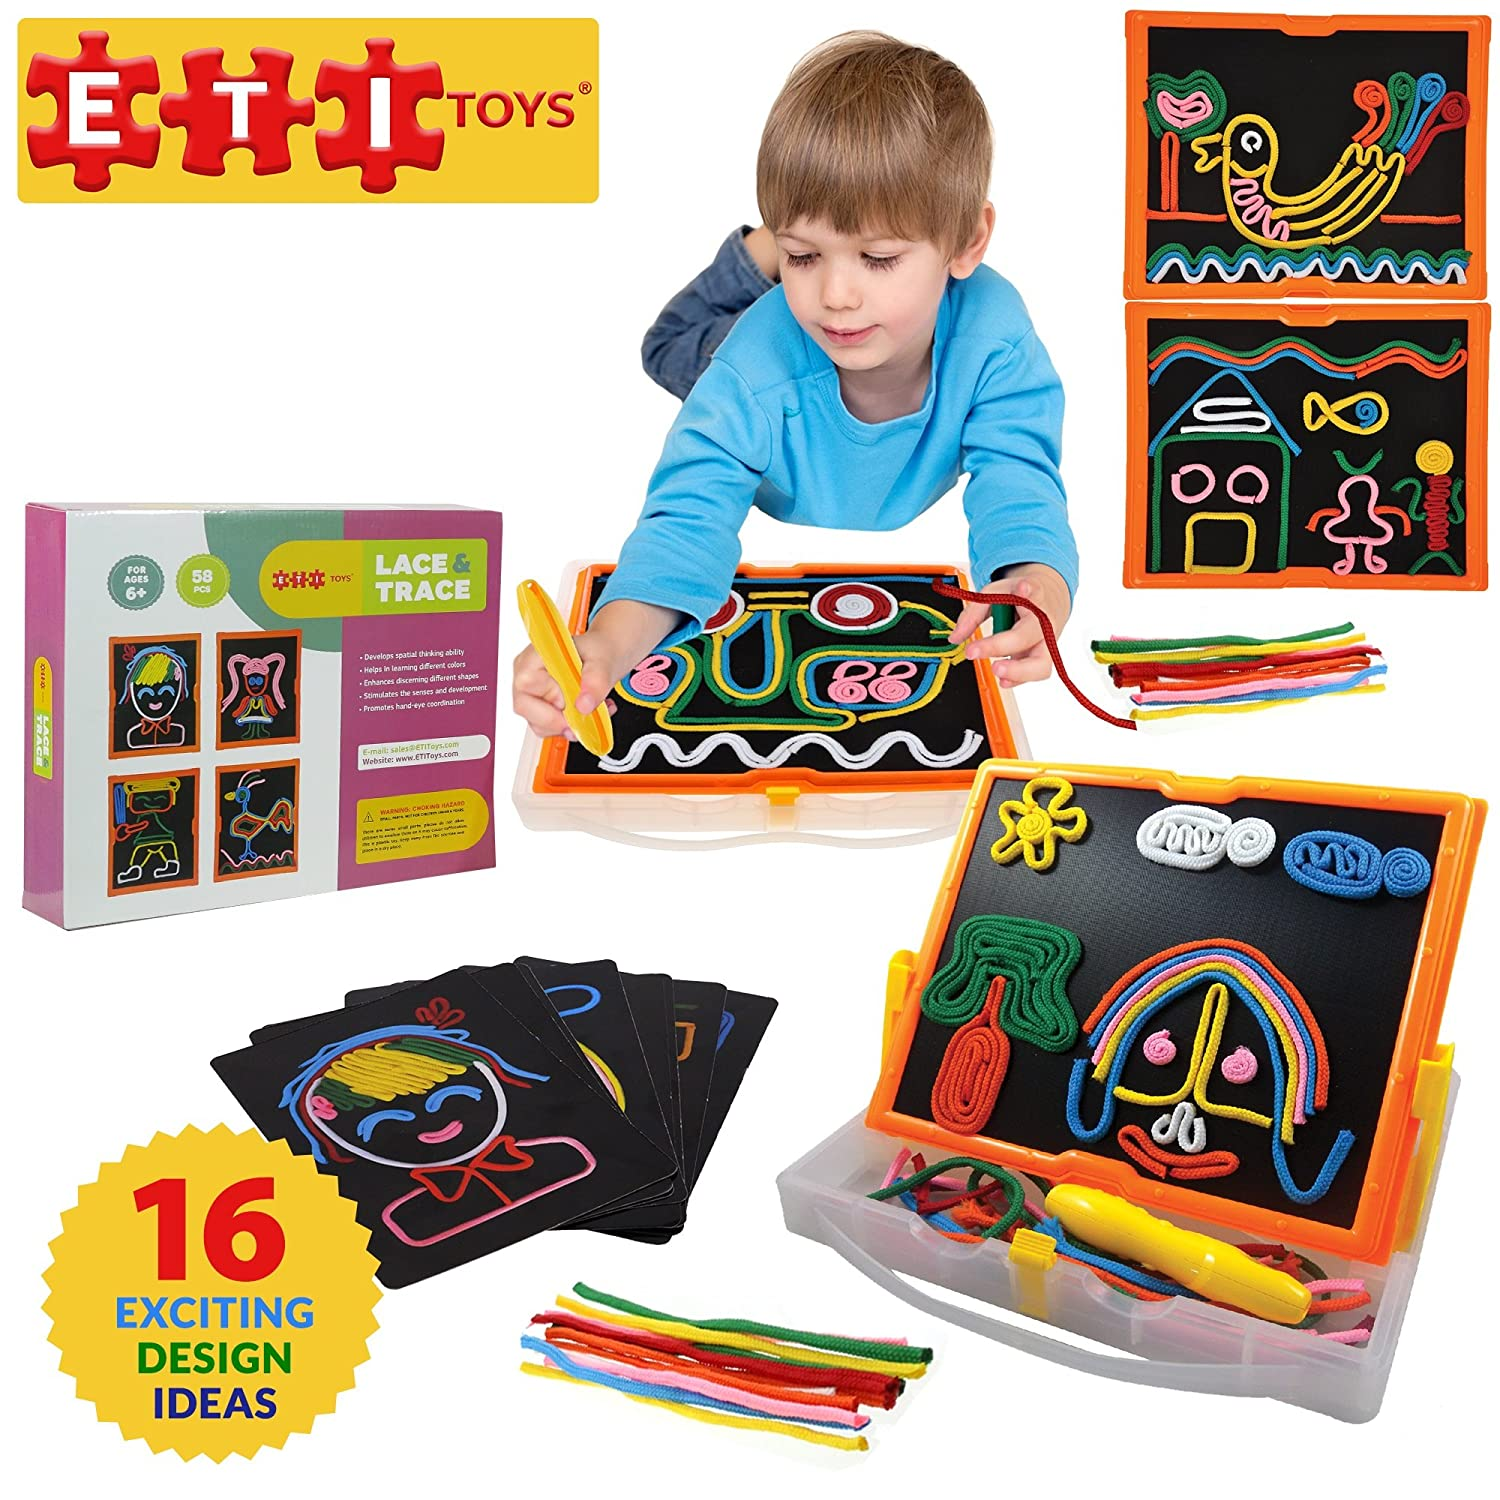 ETI Toys | 58 Piece Lace and Trace with Board; Draw House Duck Car Trees People Sun and More 100% Non Toxic Fun Creative Skills Development Best Gift Toy for 6 7 8 Year Old Boys and Girls